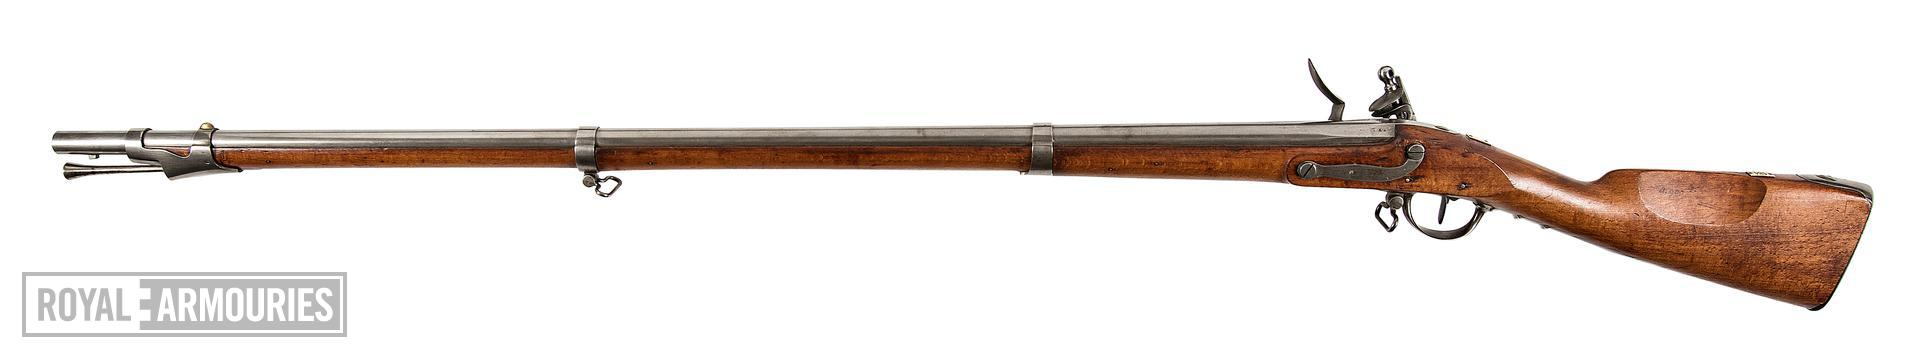 Model 1777/XIII flintlock muzzle-loading military musket, about 1806, France (XII.2233)